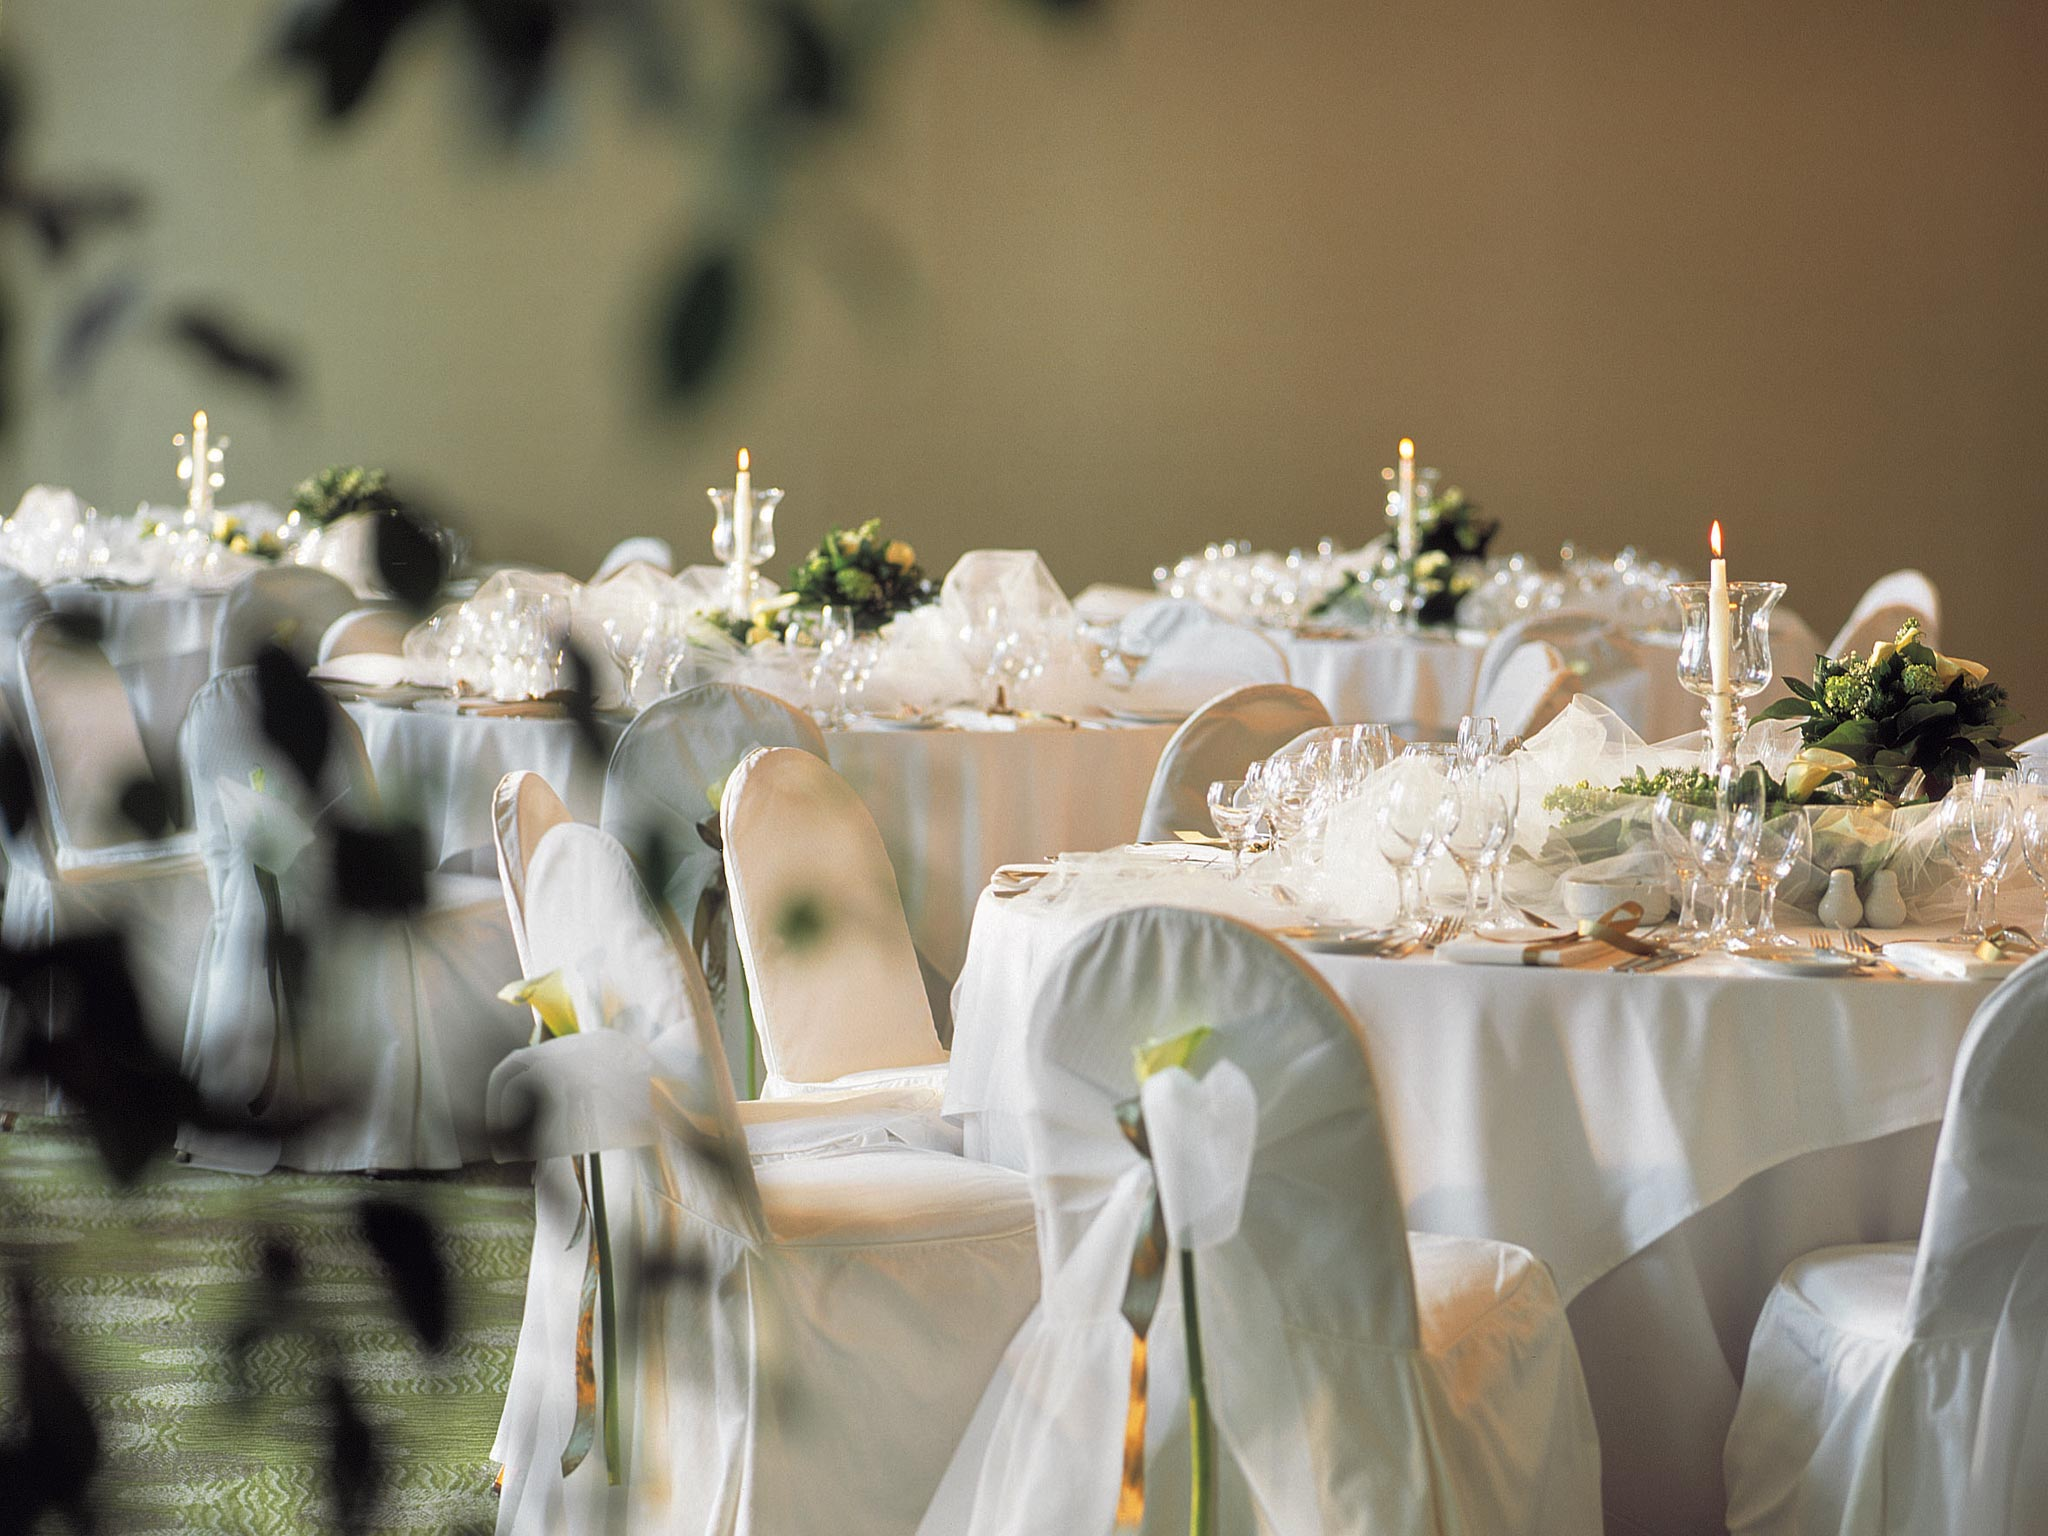 Fairytale Weddings in Vouliagmeni Suites